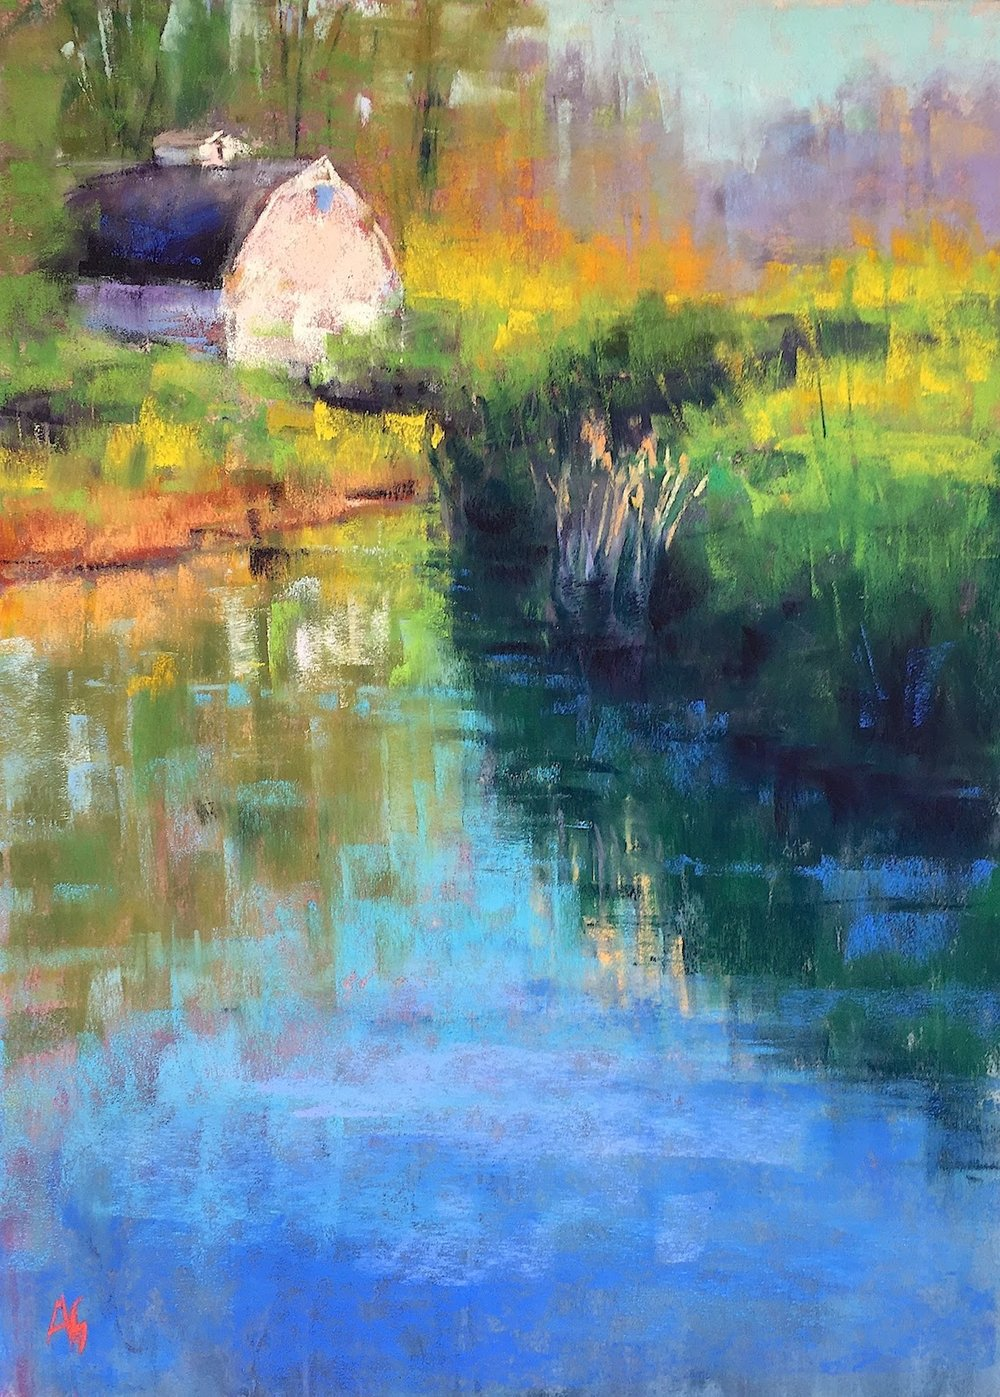 Mirror Pond. 9x12. Sold.